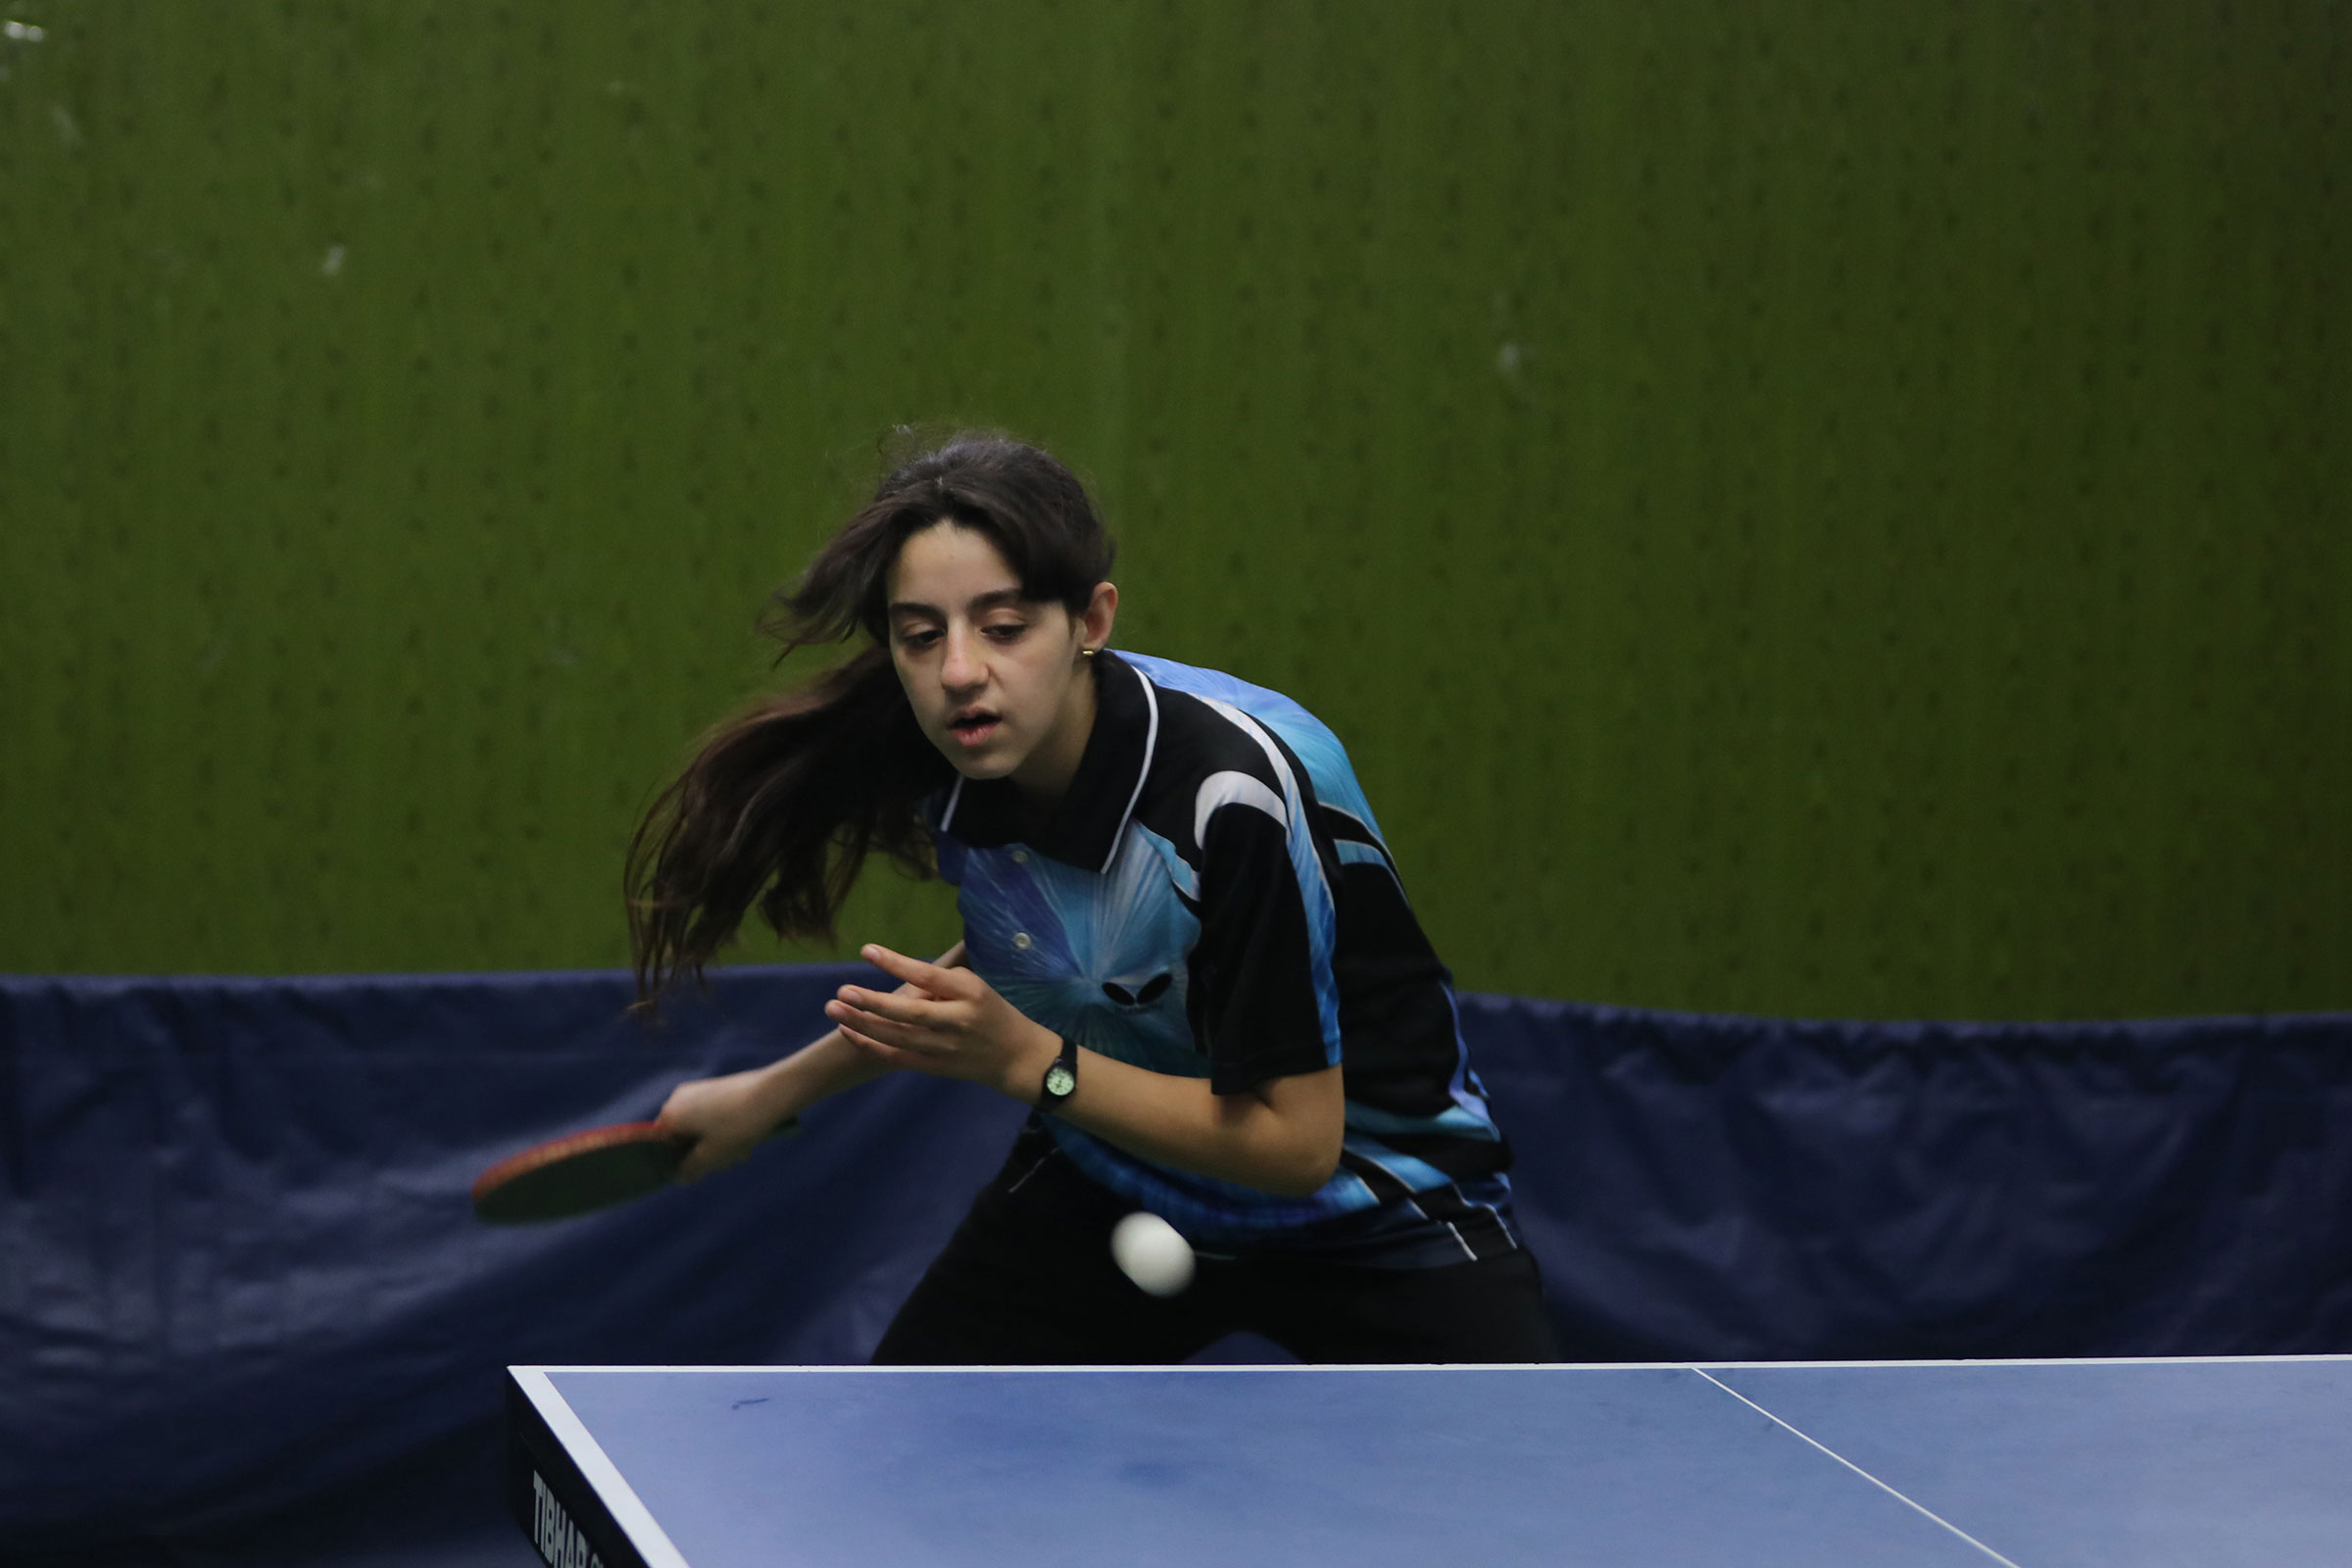 Syria's table tennis player Hind Zaza plays during the local clubs championship on March 13, 2020 in Damascus, Syria.